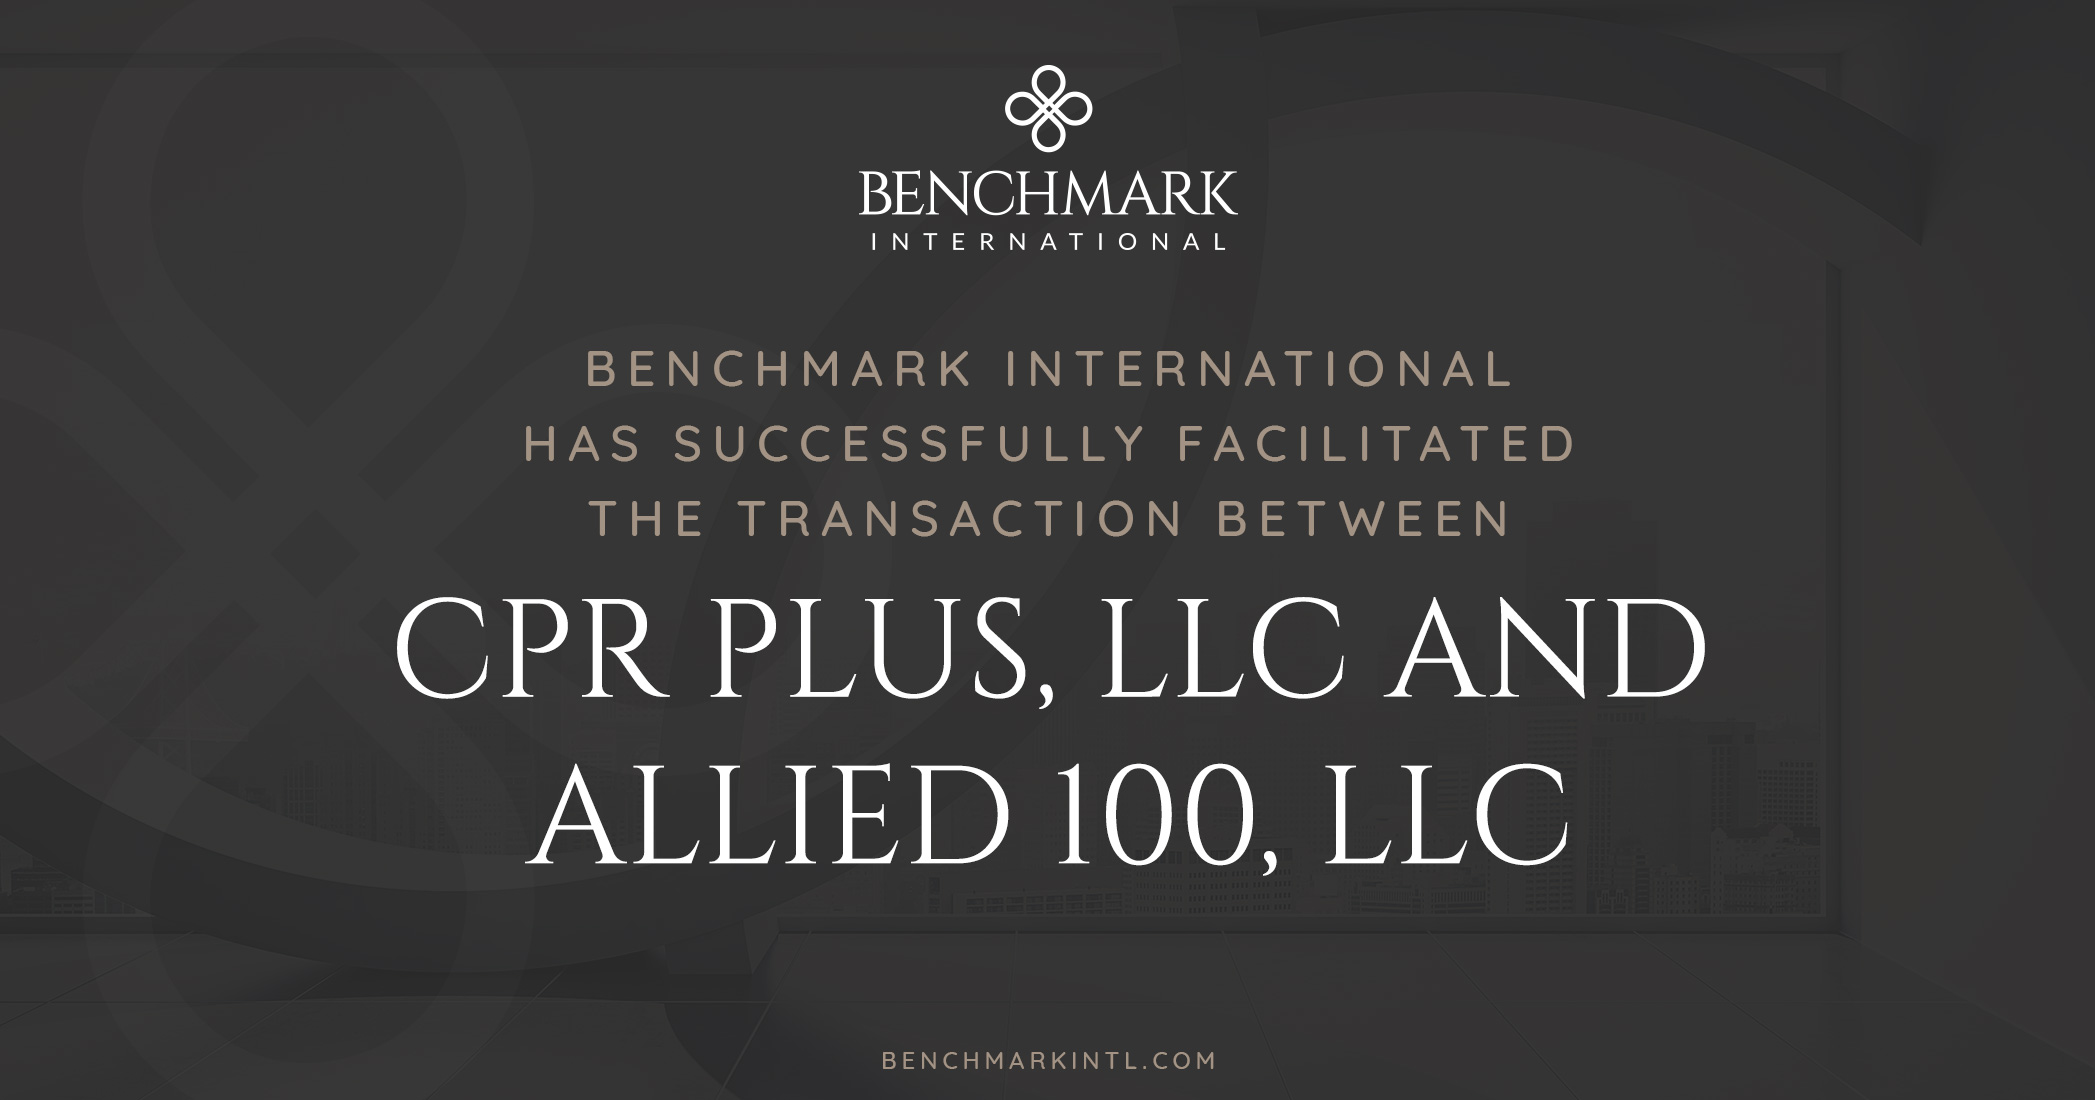 Benchmark International Facilitated the Transaction of CPR Plus, LLC to Allied 100, LLC